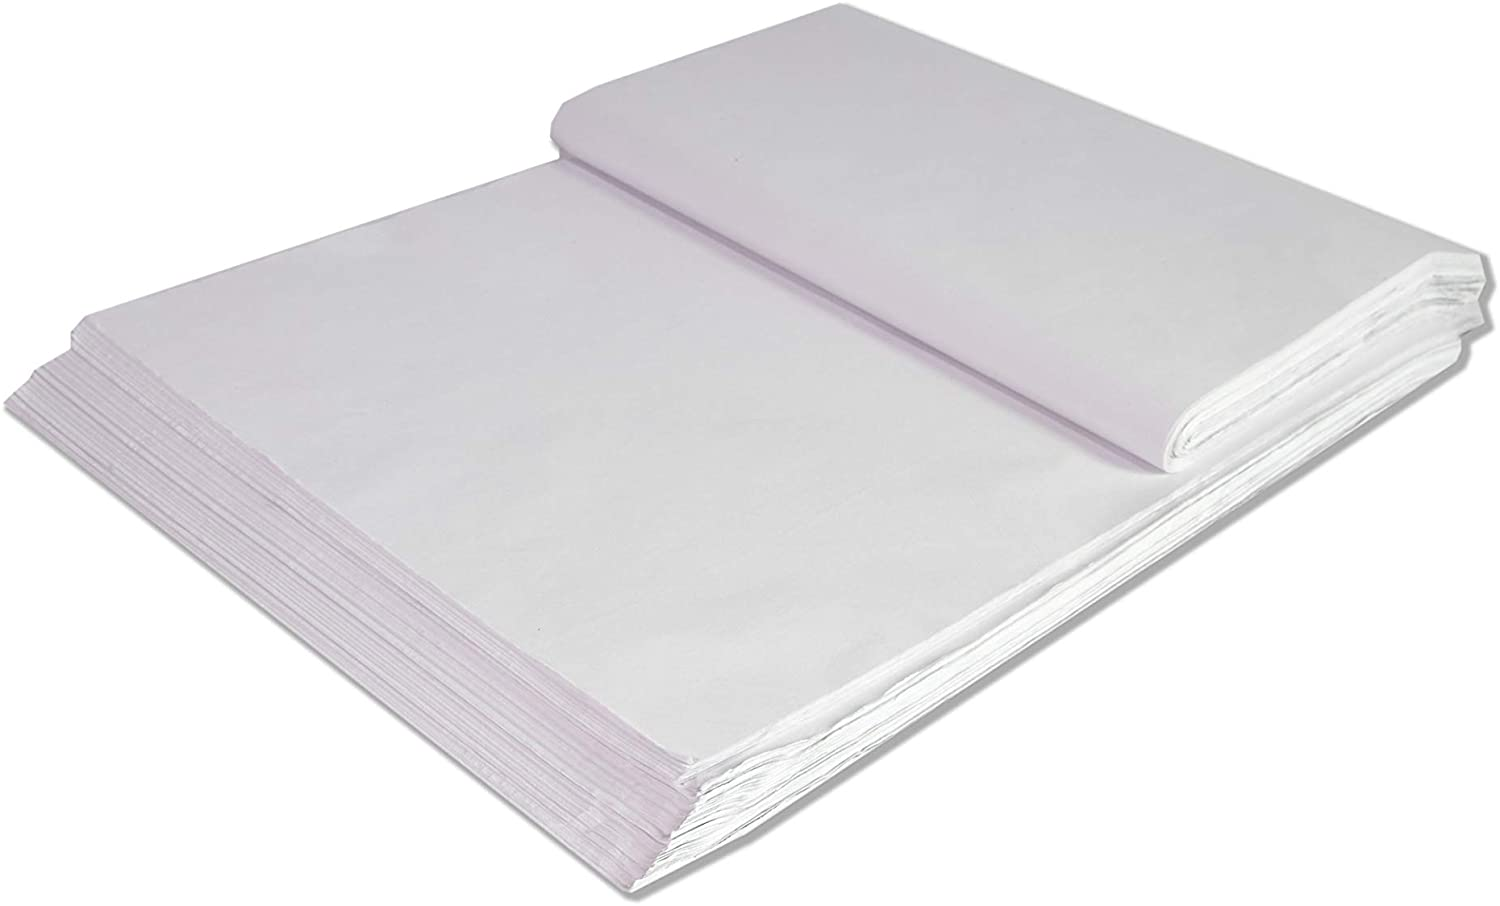 20 x 30 White Tissue Paper-2 Ream Pack, 960 Total Sheets …: Health & Personal Care